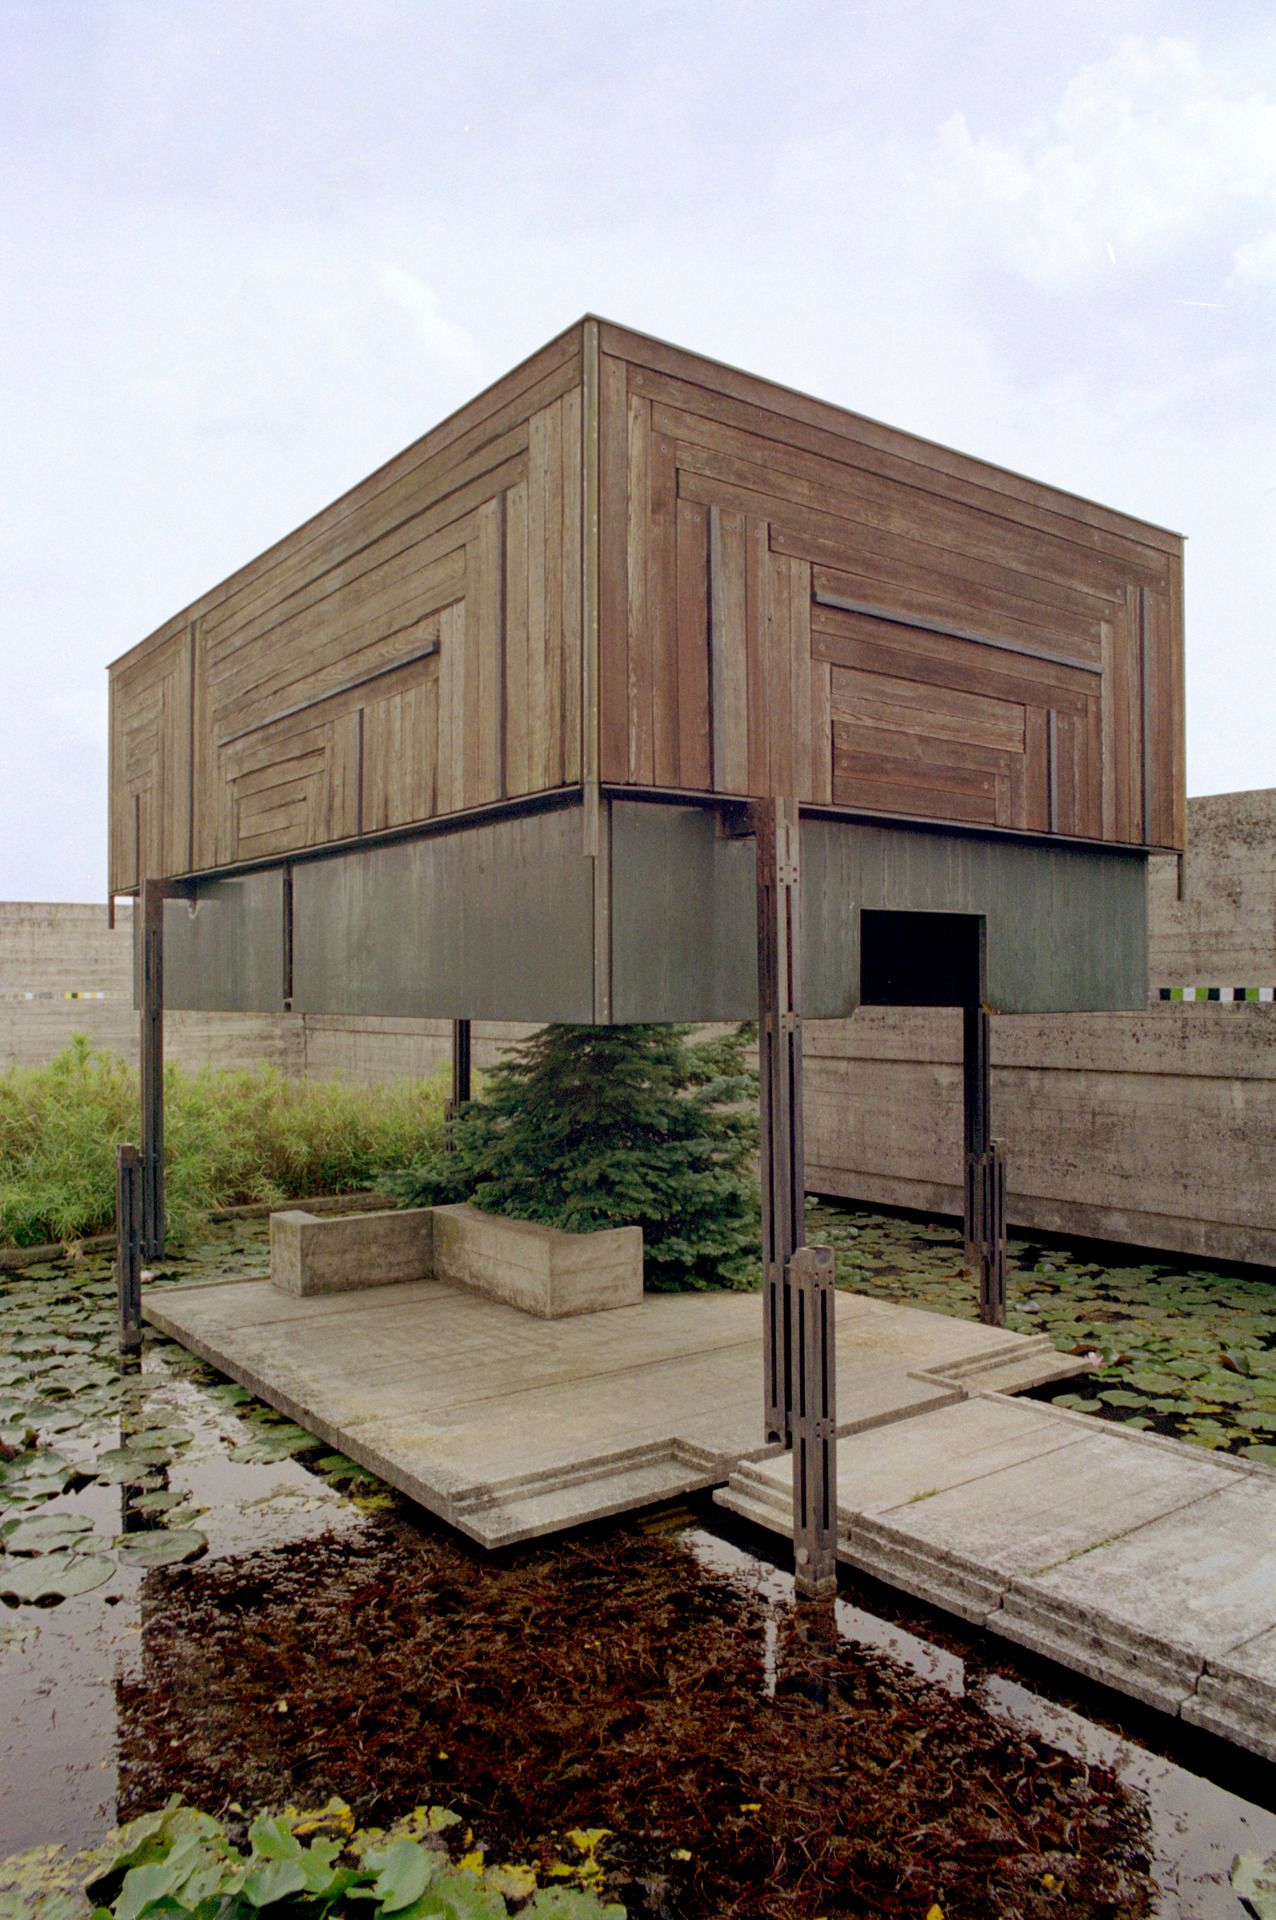 Moted Pavillion Carlo Scarpa With Images Architecture Details Architecture Exterior Carlo Scarpa